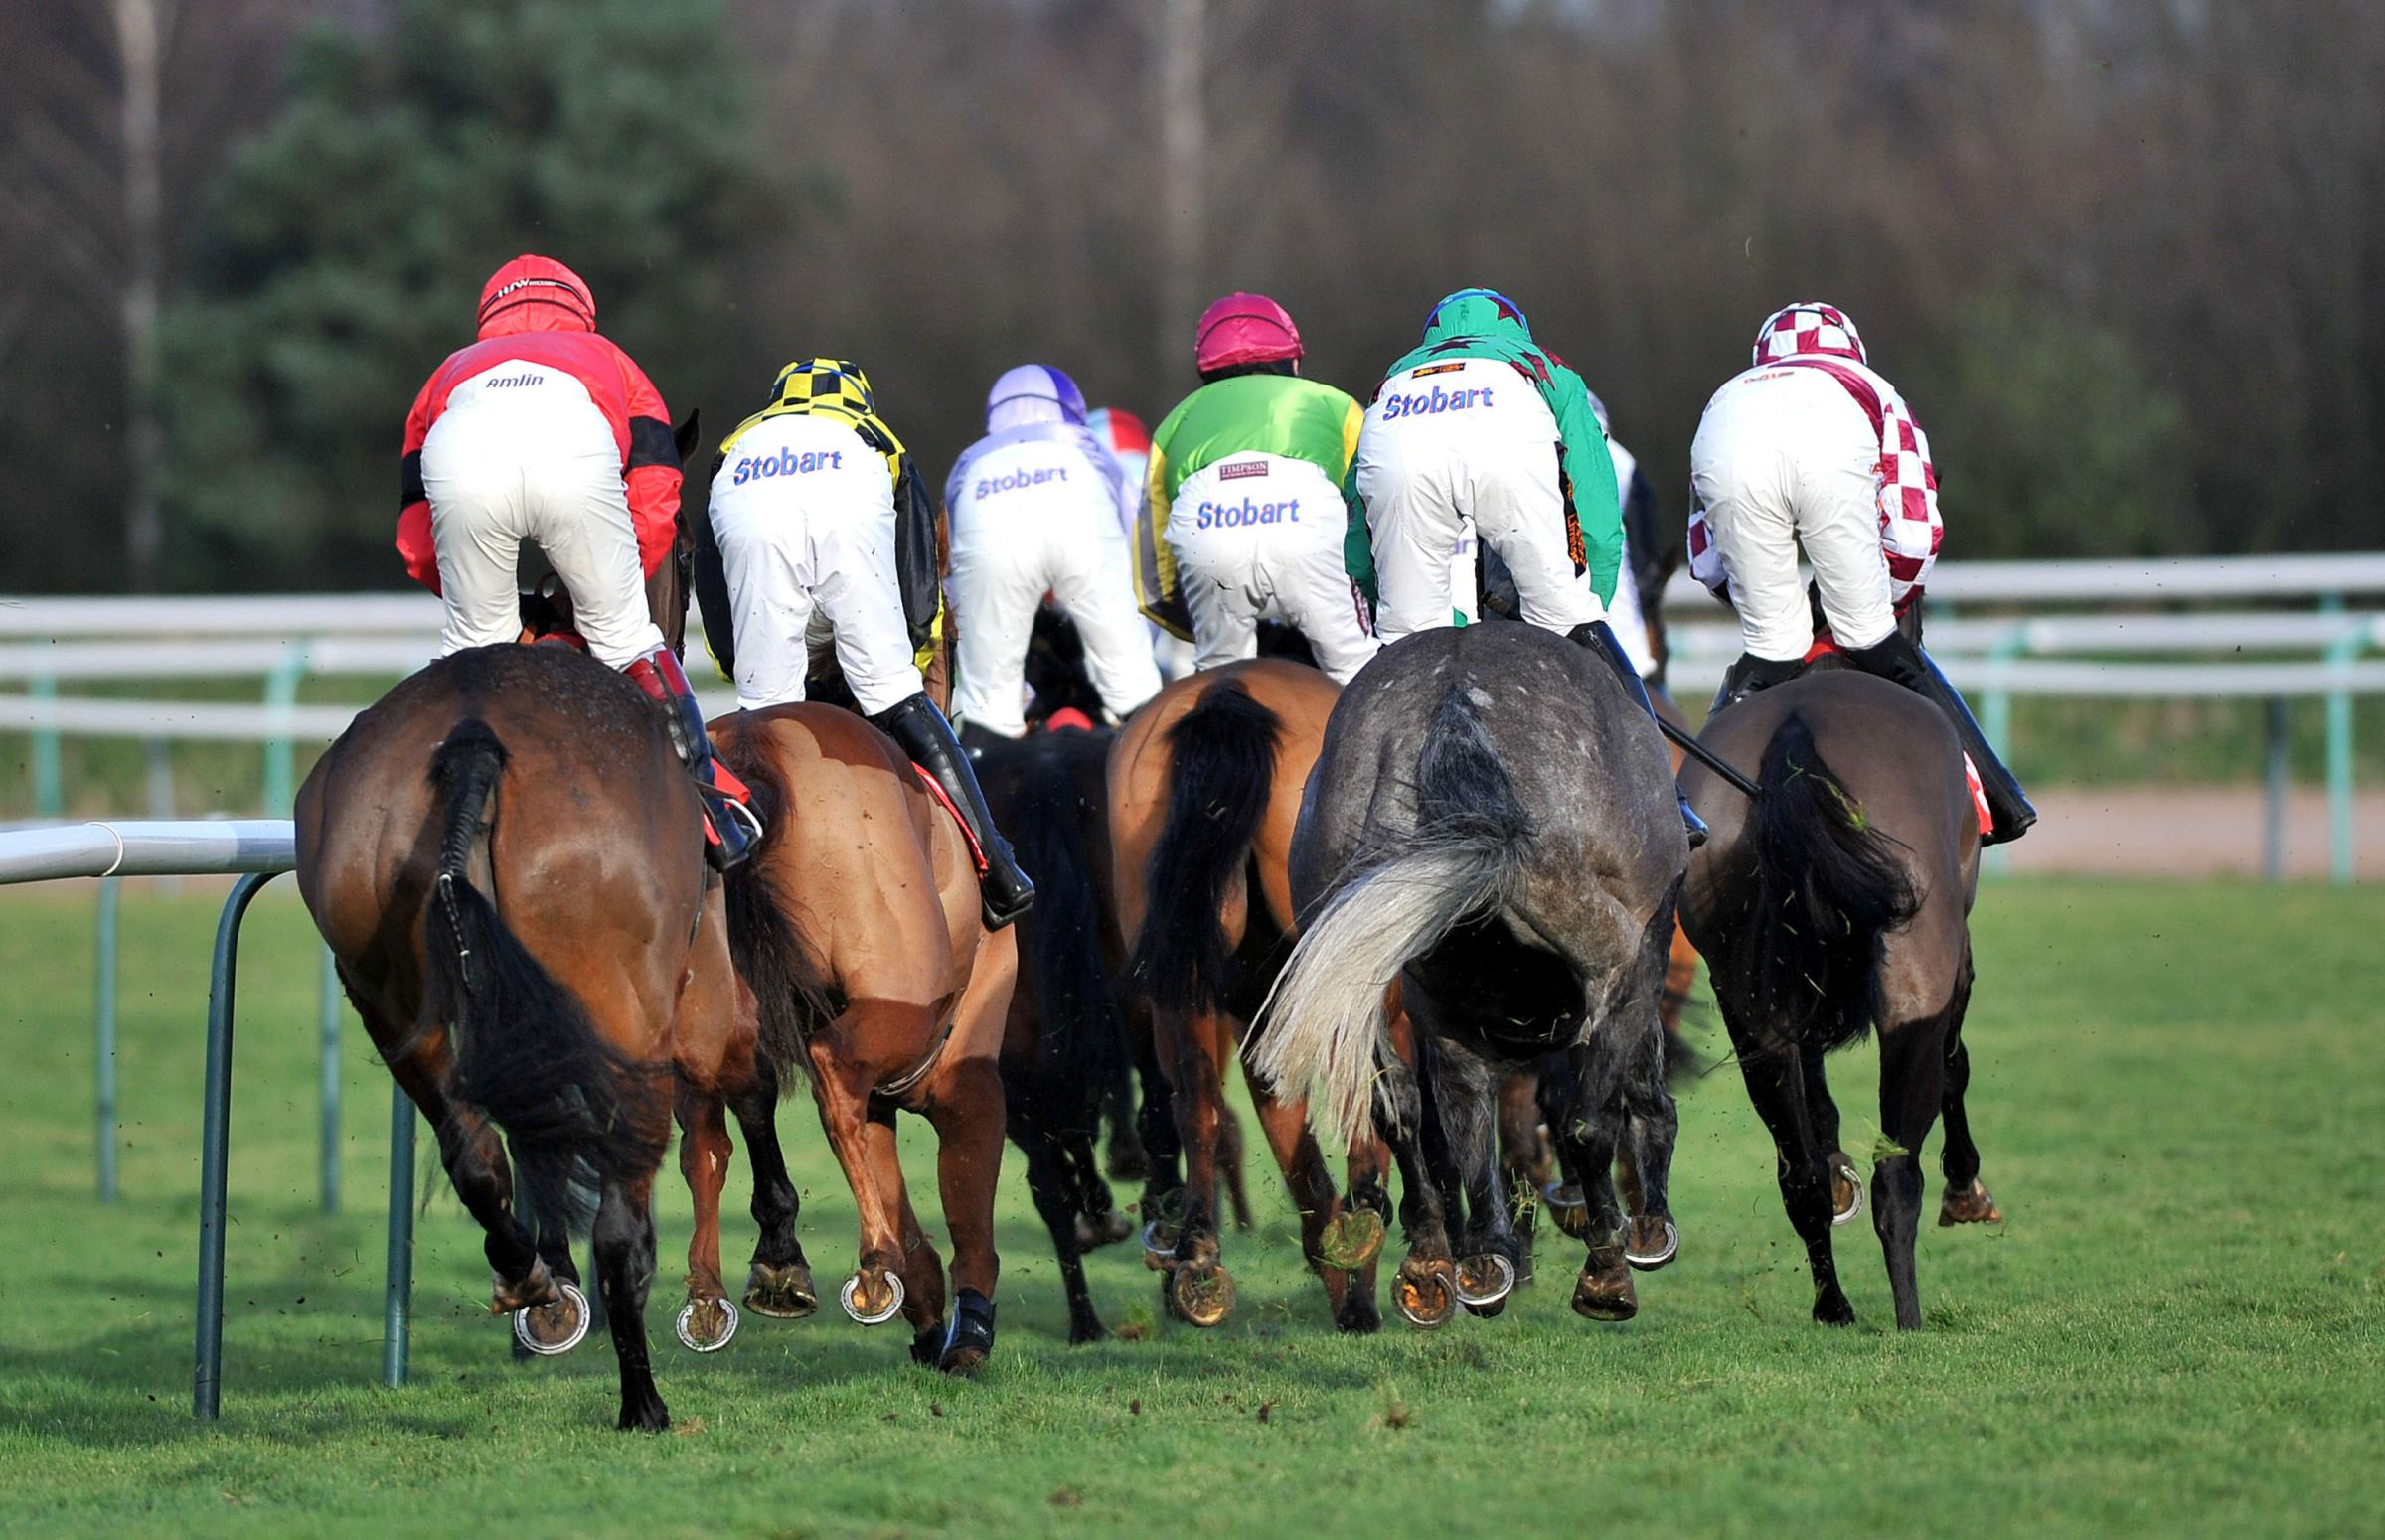 REAR ELEVATION: Runners and riders during The Your Favourite Pool Bets At totepool.com Novices' Hurdle at Southwell